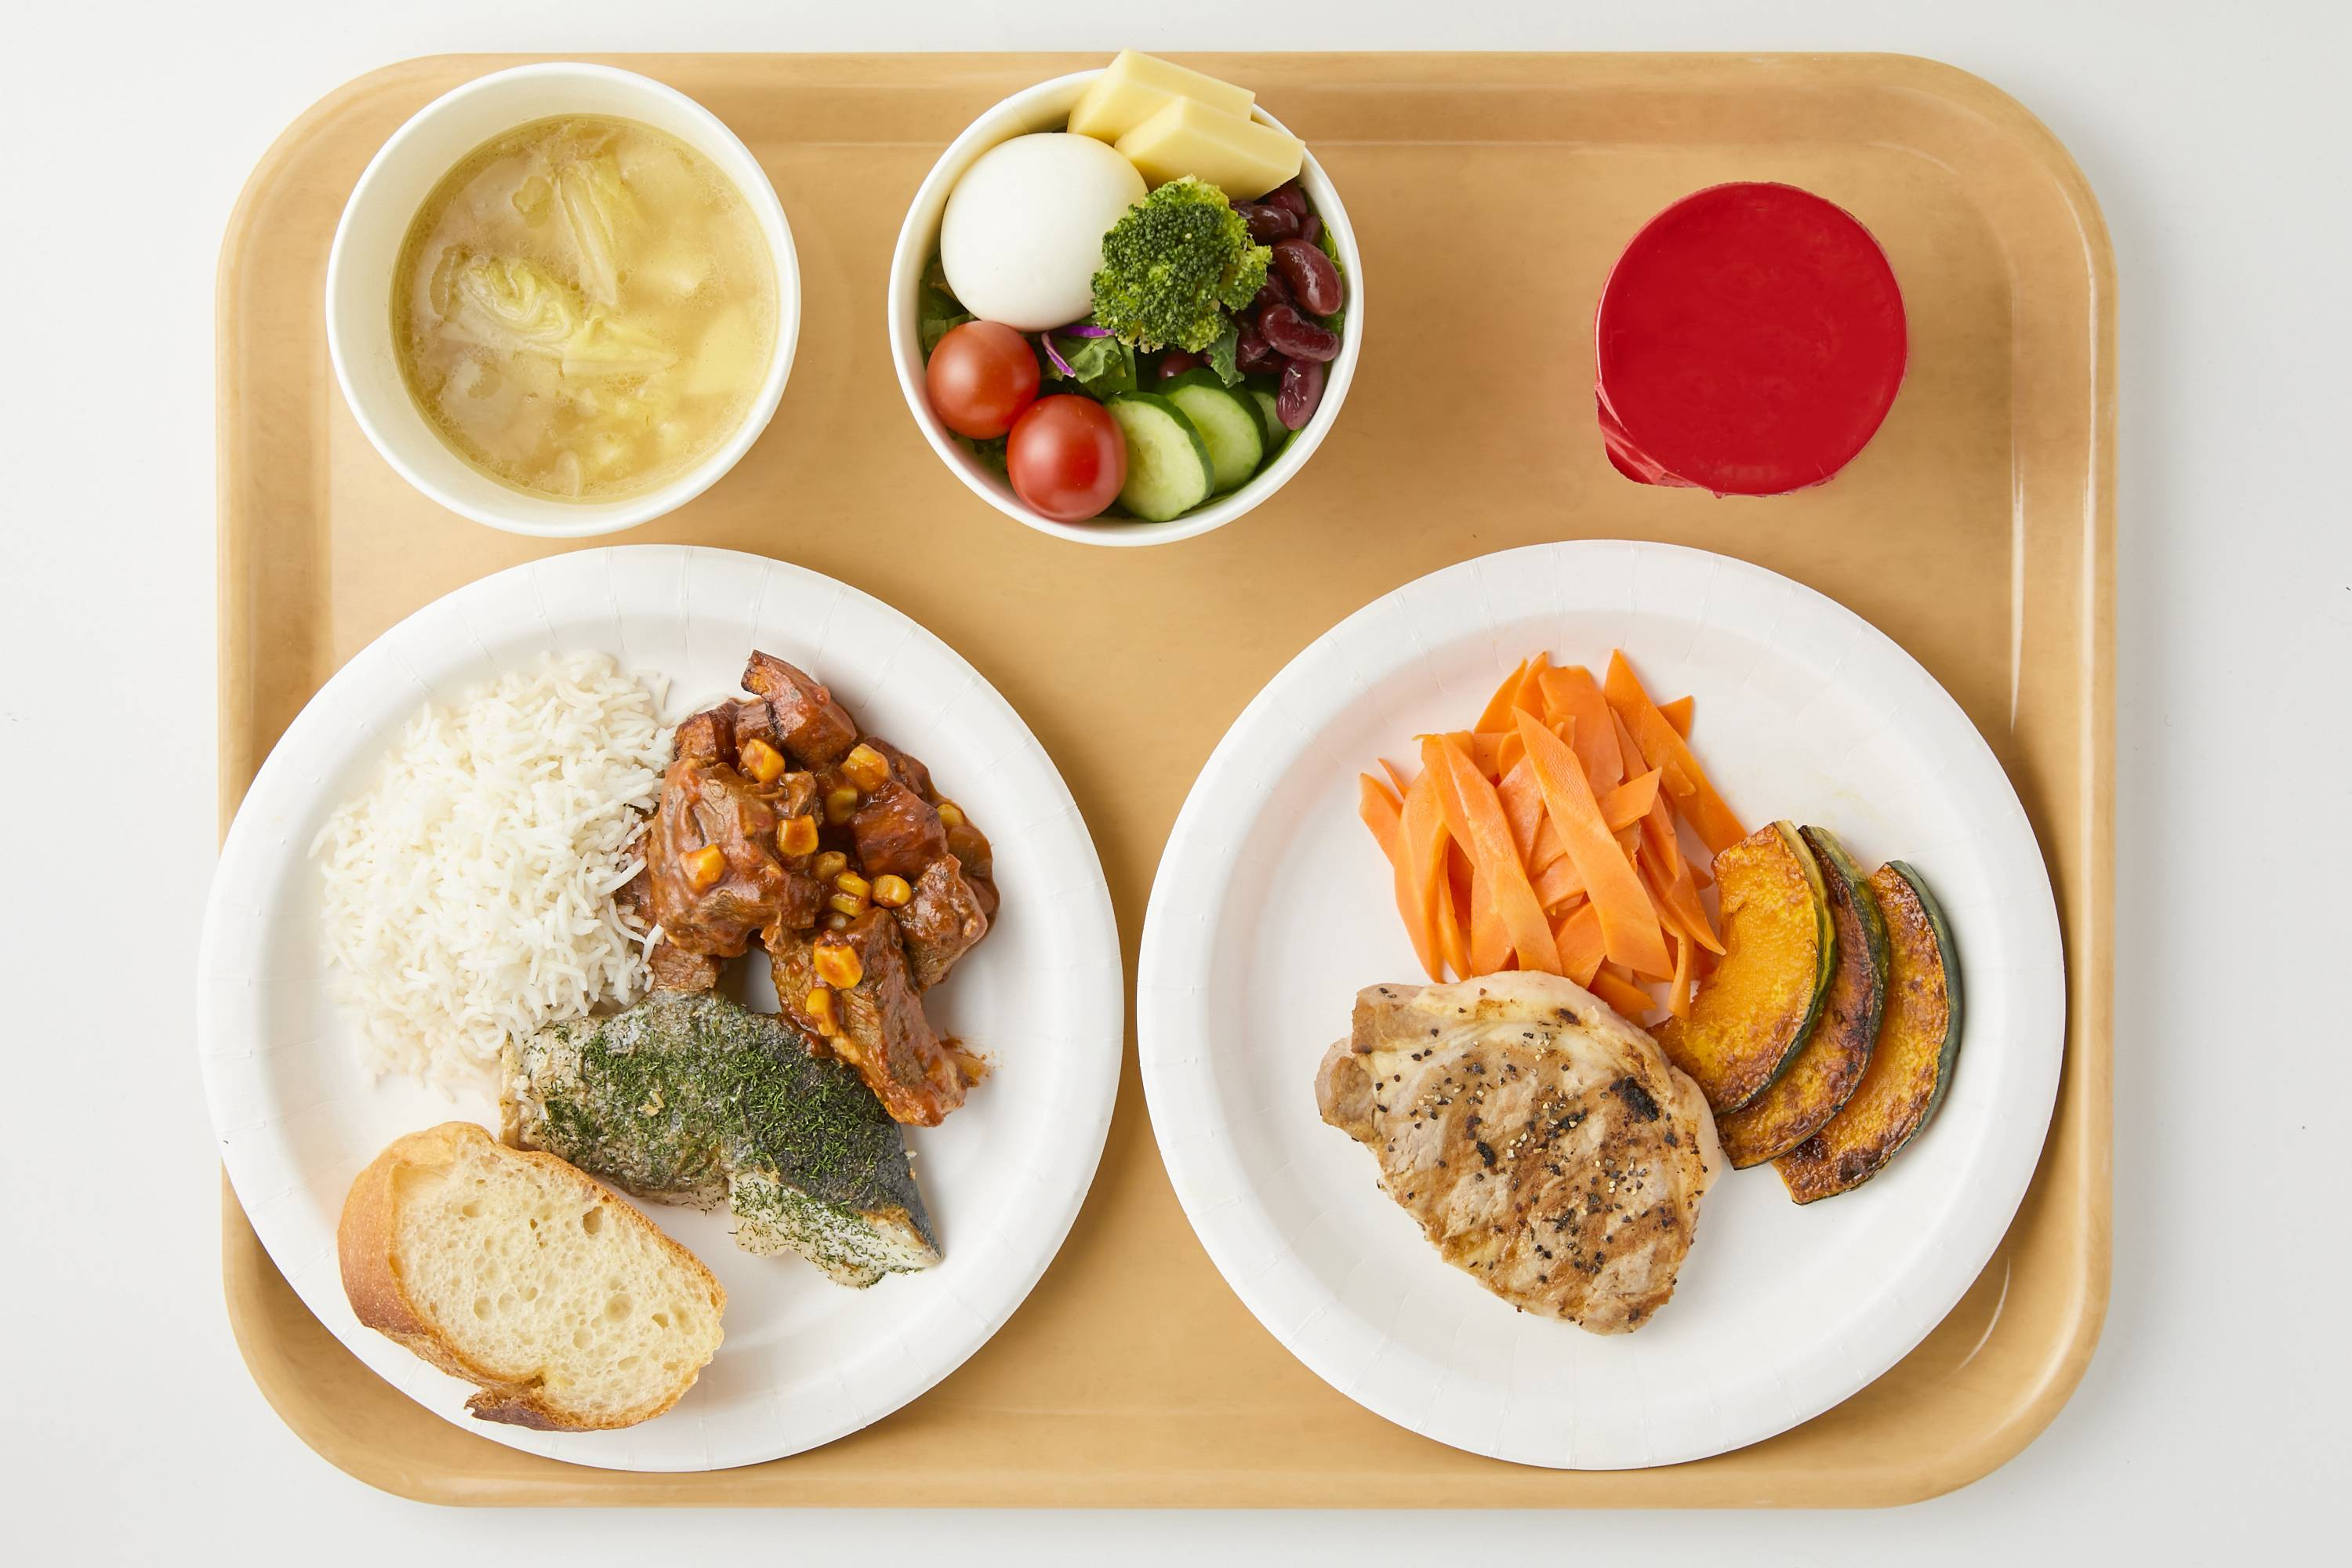 A sample of dishes served in the main dining hall at the athletes' village: braised beef and vegetables, sauteed cod with herbs, basmati rice, baguette (front left), grilled pork, grilled vegetables (front right), cabbage soup (back left), mixed salad (back center) and yogurt. | TOKYO 2020 / VIA KYODO